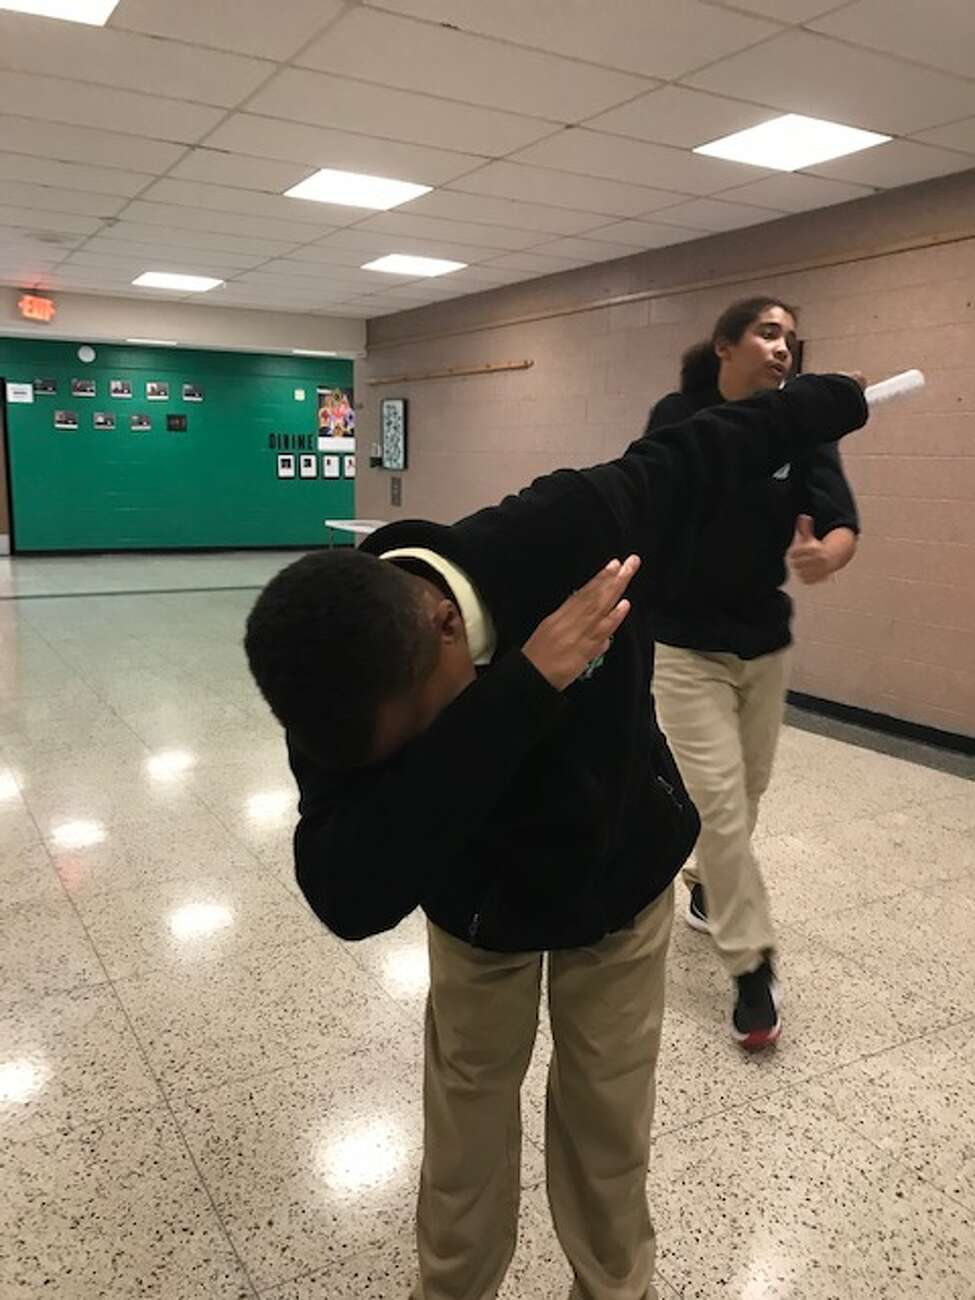 Aidan Park, a sixth grader at Green Tech Charter High School, demonstrates how he taught a homeless man to dab during the school's annual